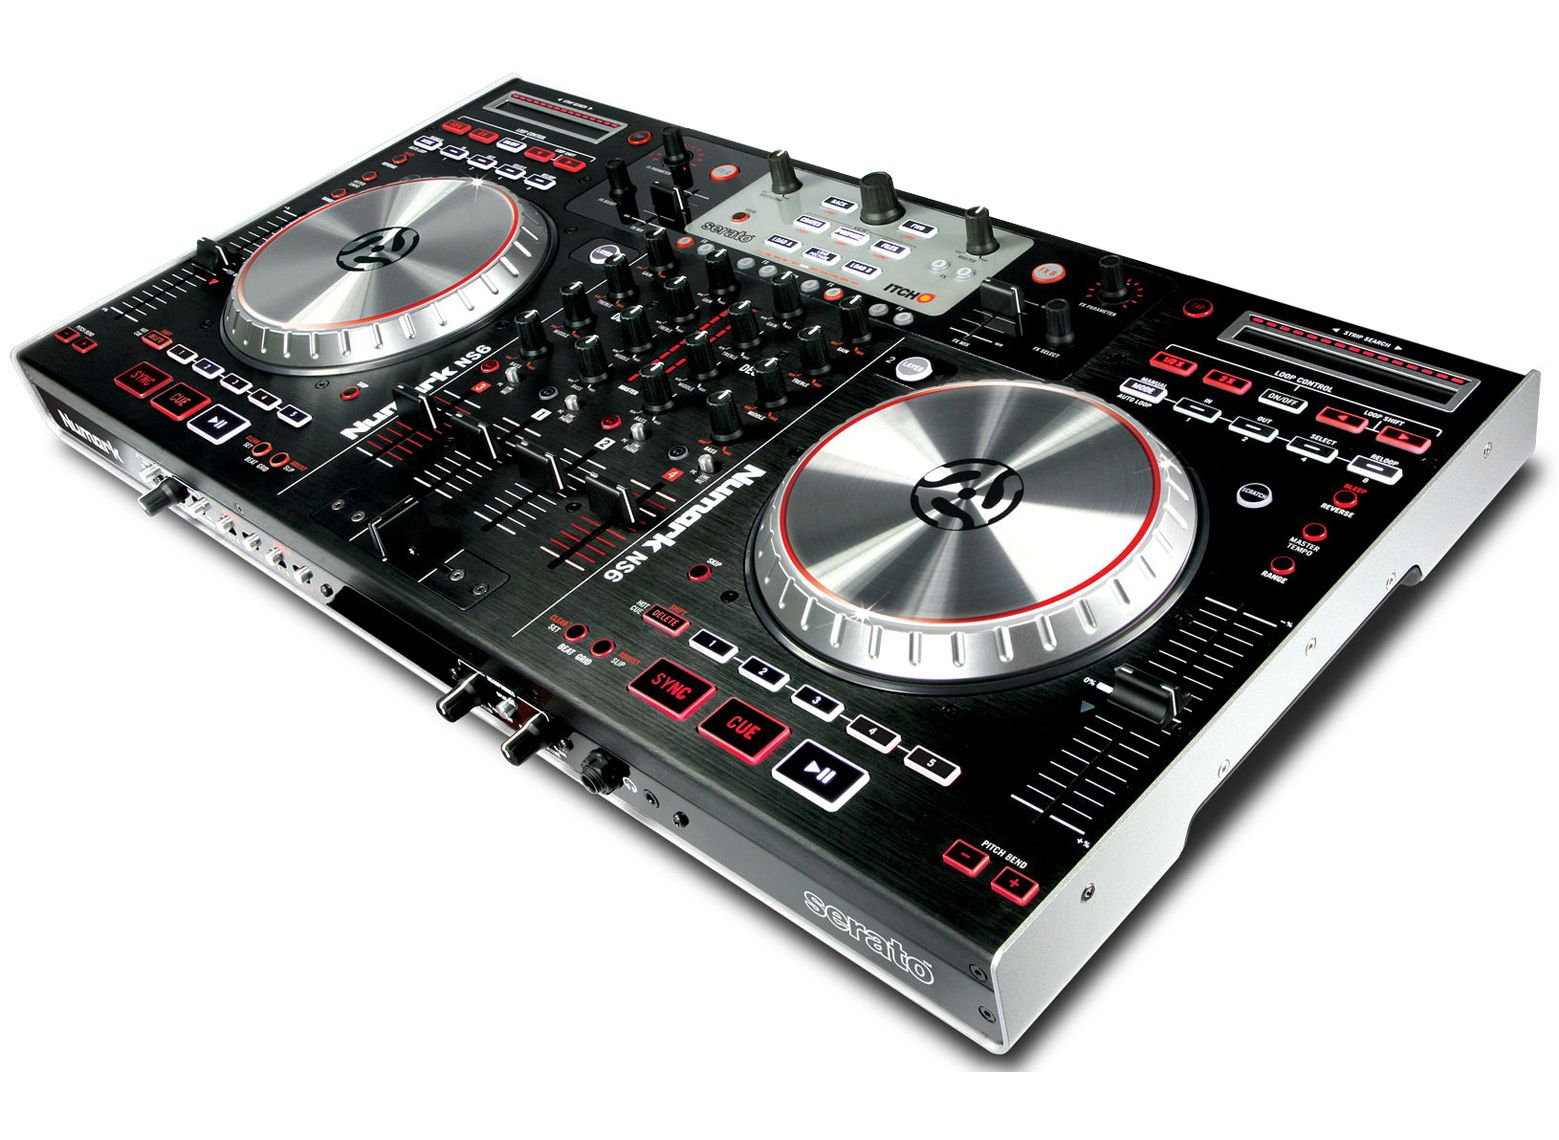 Pin By Druthedj On Numark Ns6 Pinterest Music Dj Equipment And Mixtrack Pro Wiring Diagram Visit